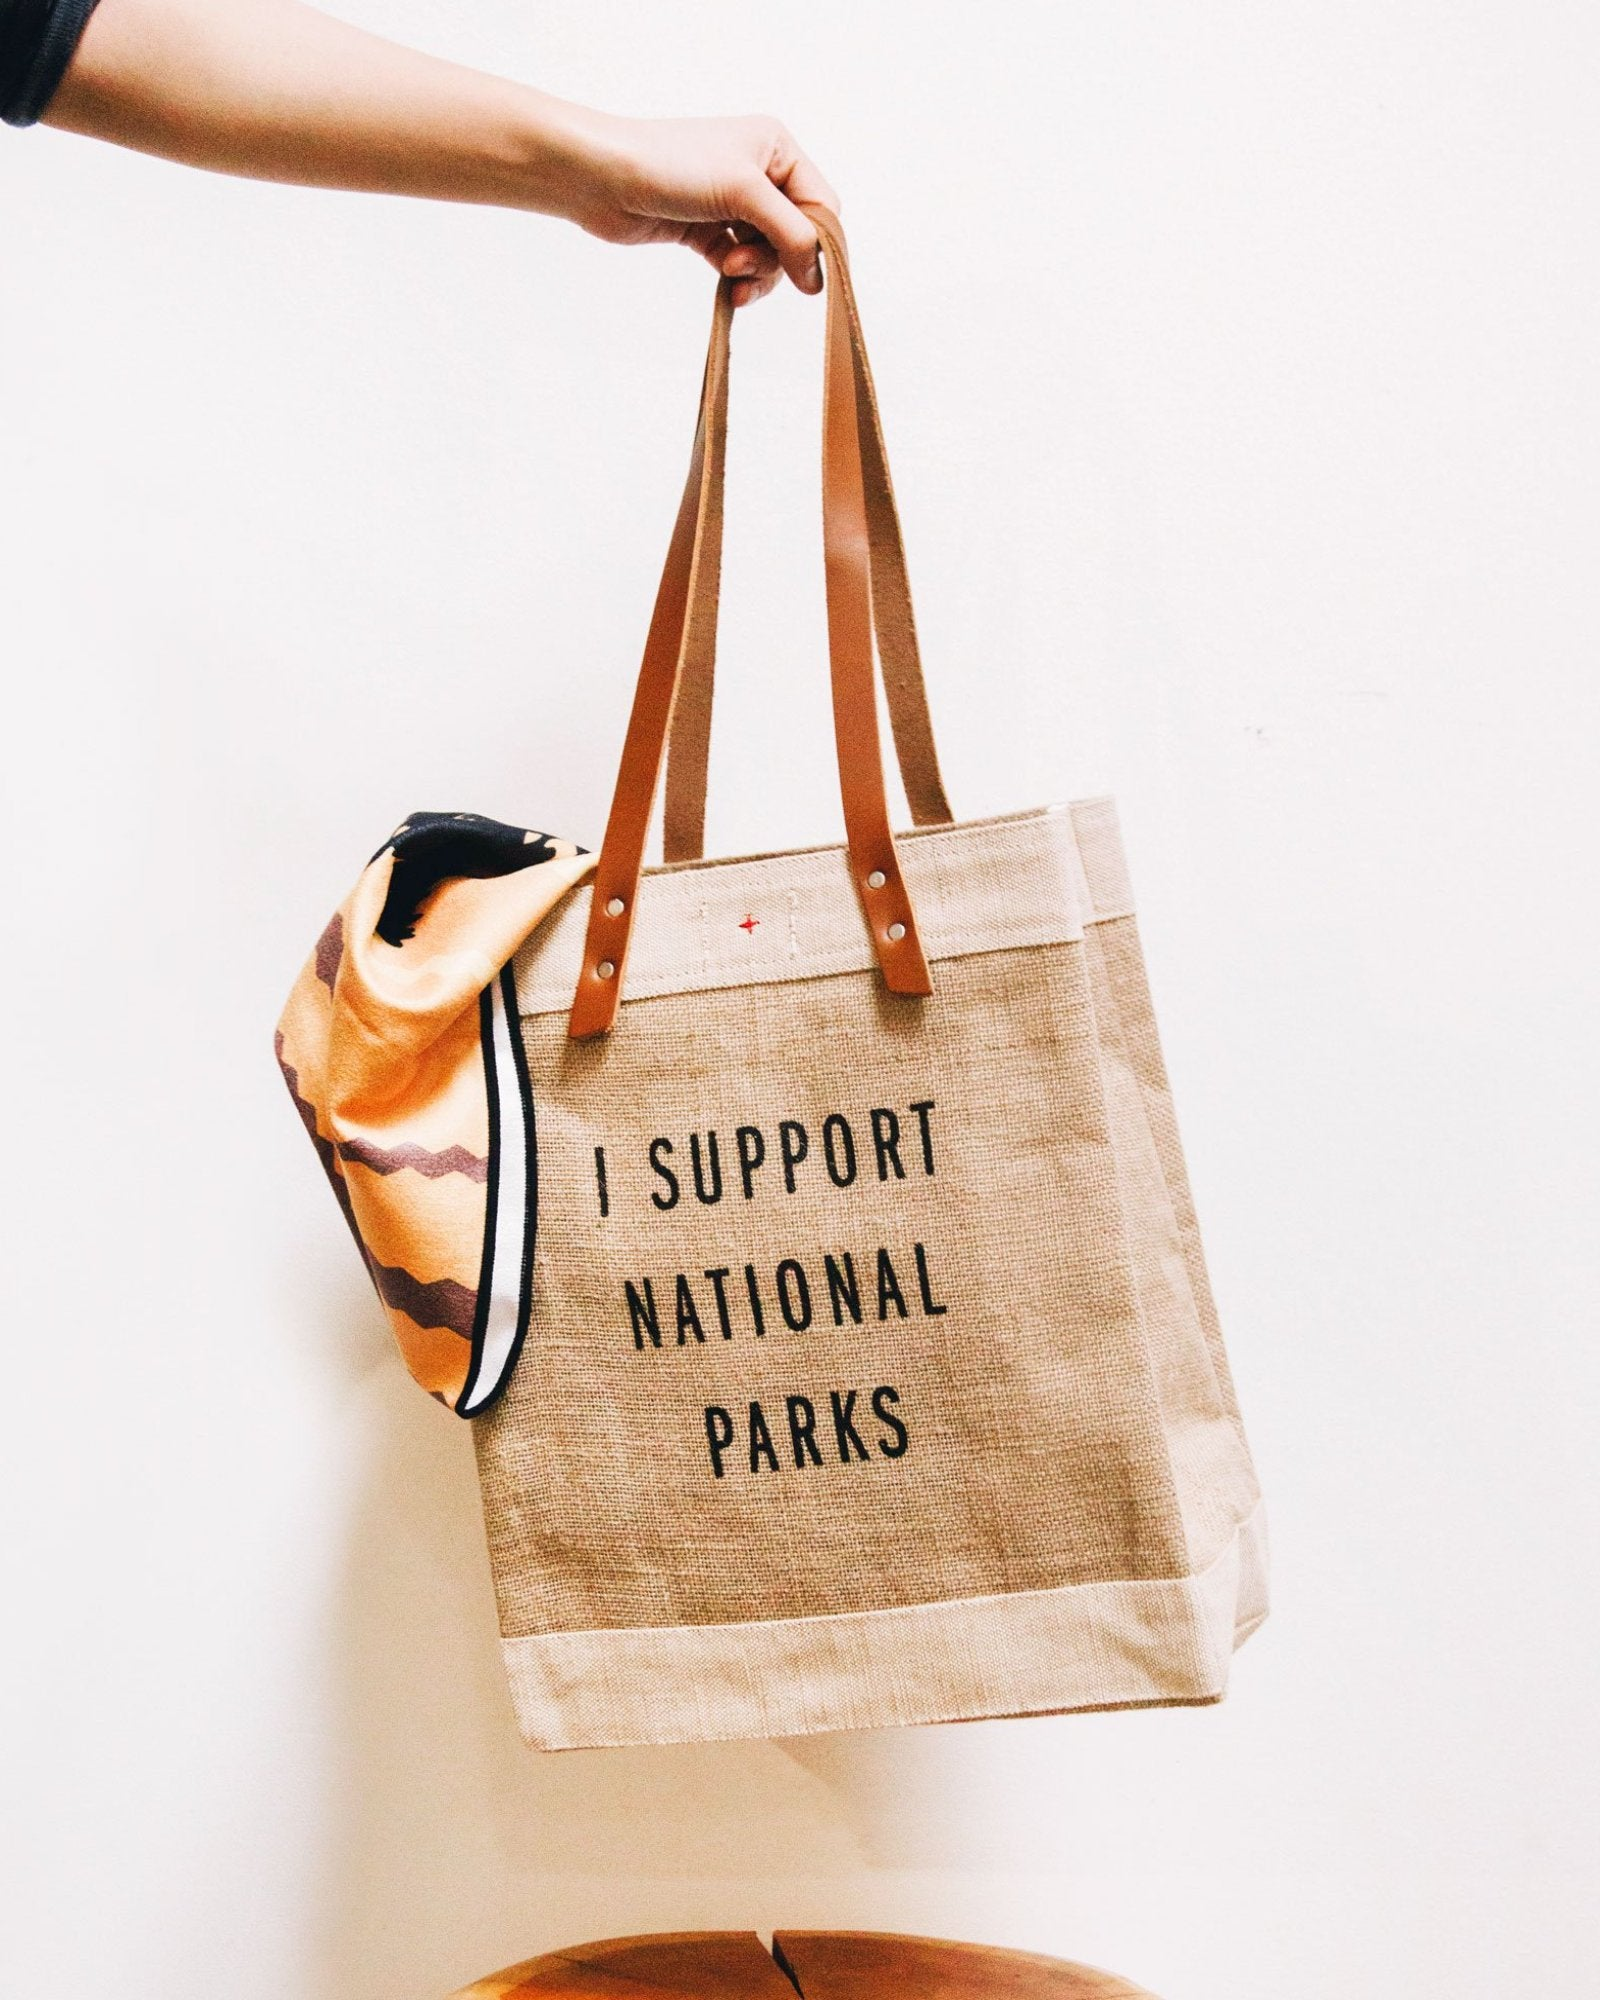 Park Supporter Jute Tote